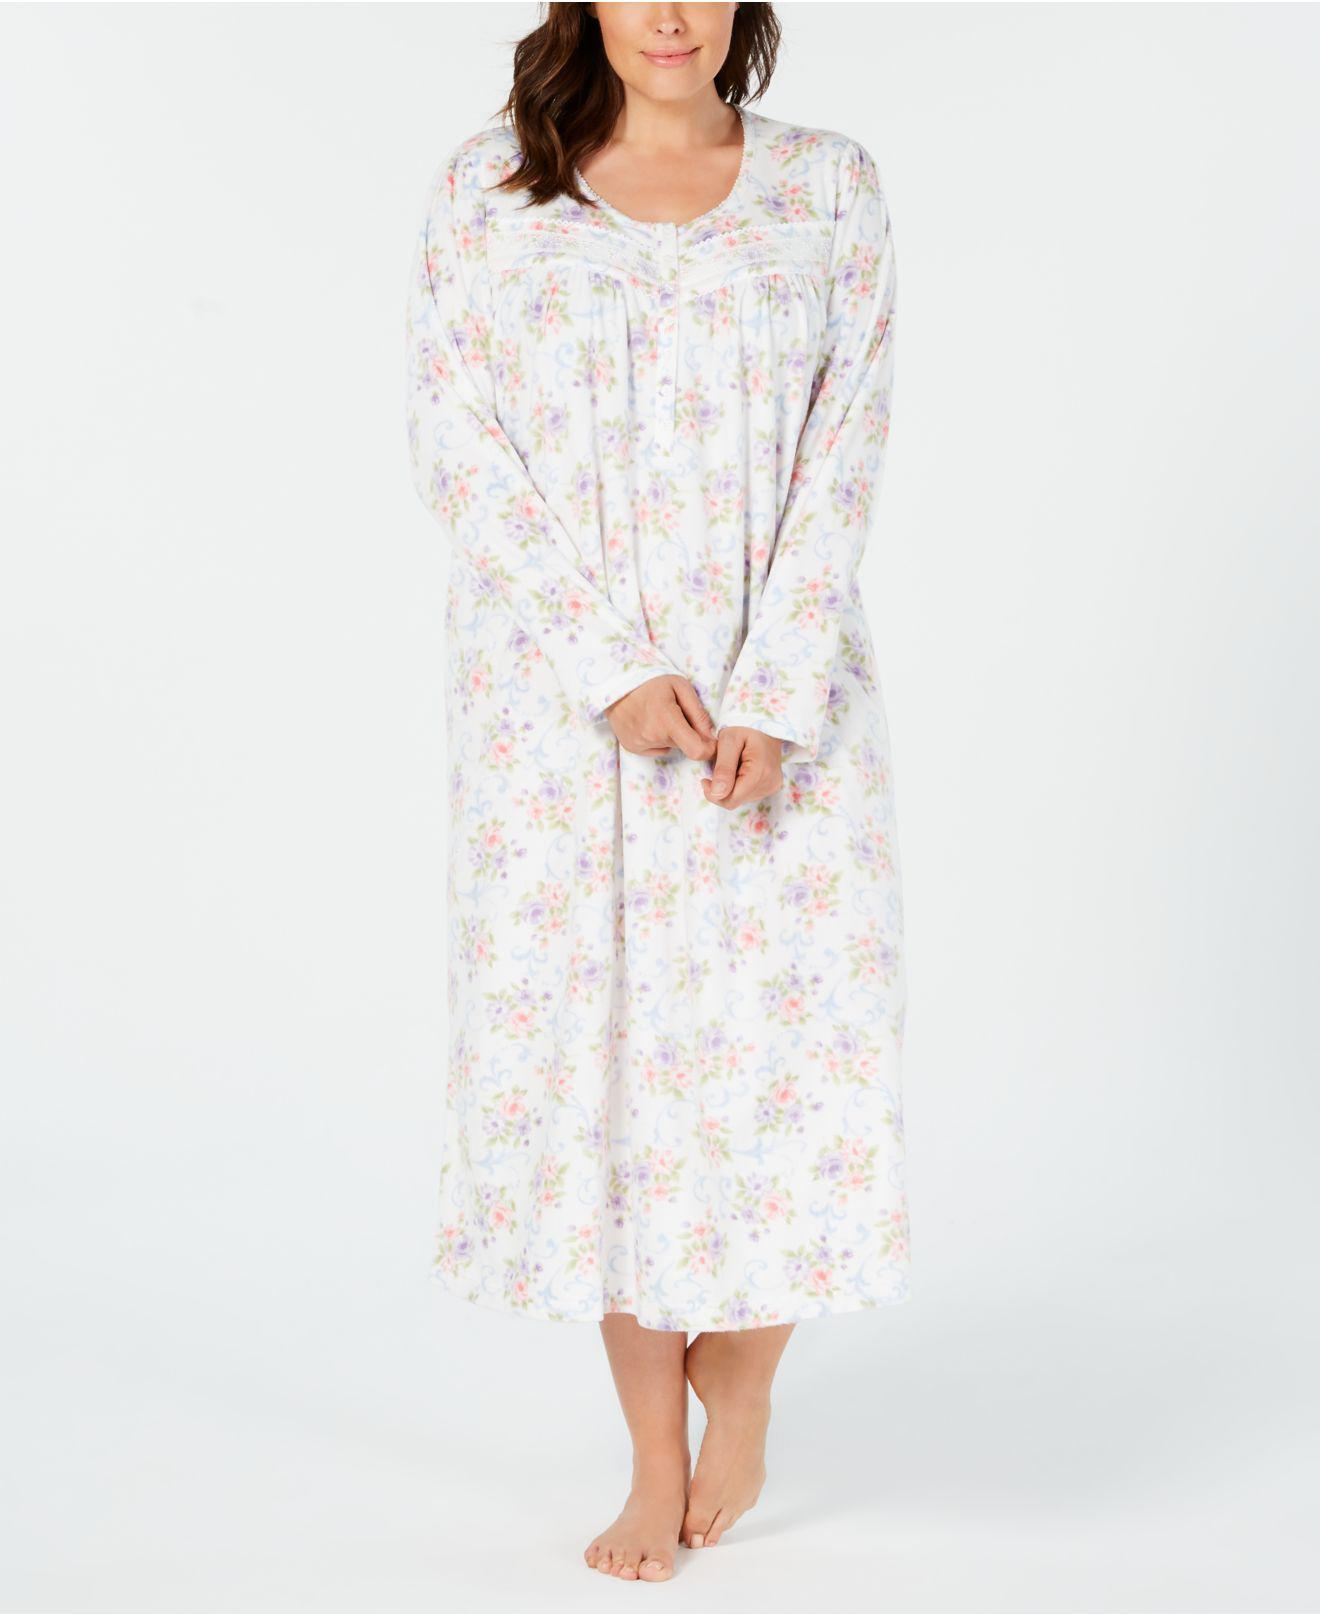 d56a53bac31 Lyst - Charter Club Plus Size Printed Fleece Nightgown